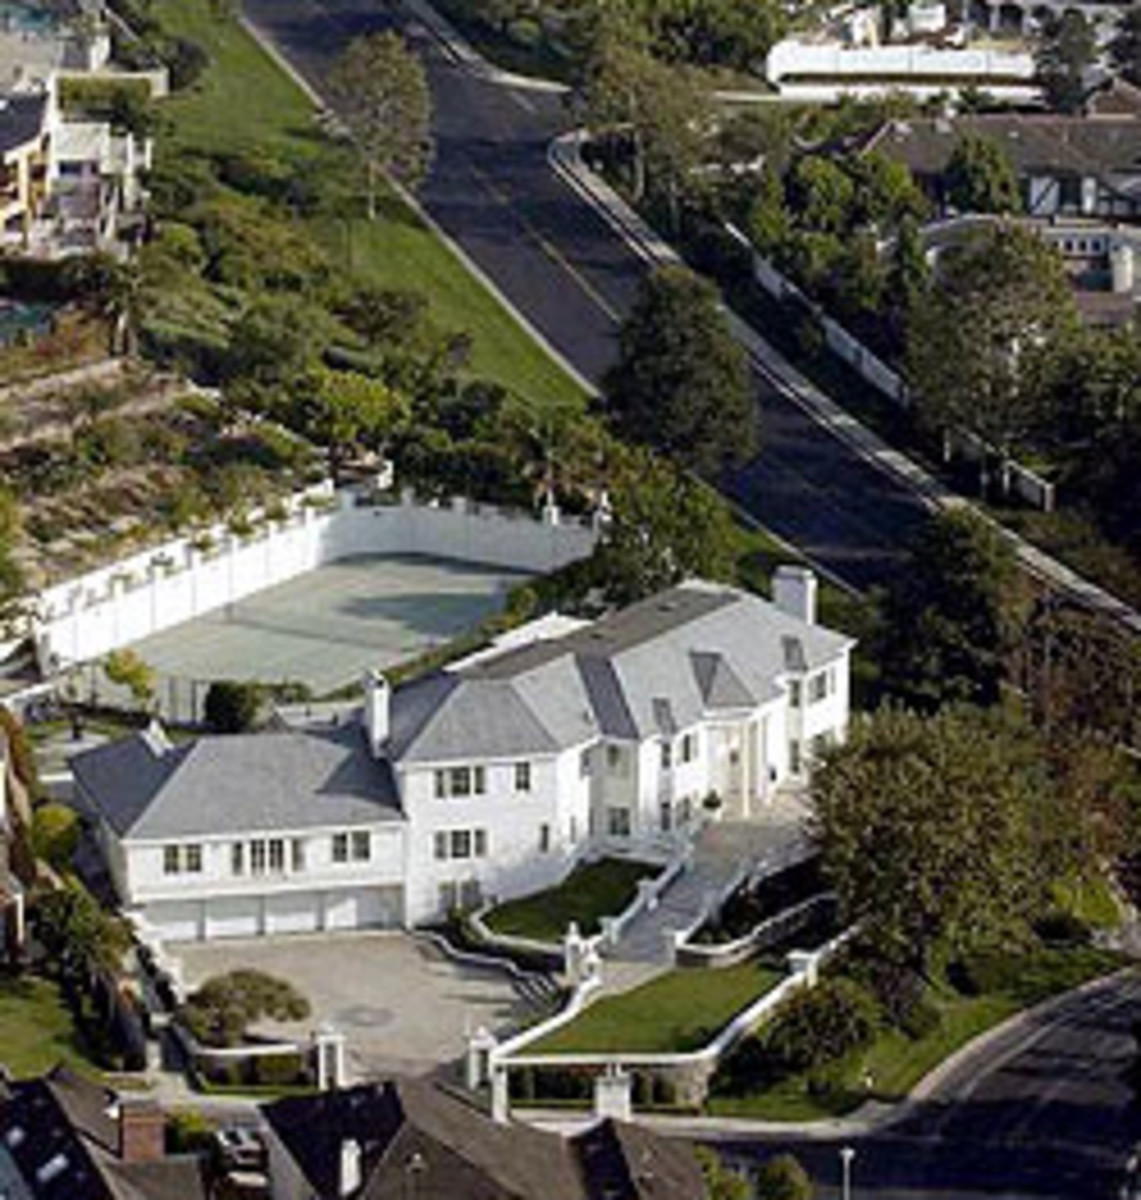 Jan and Paul Crouch's Mansion